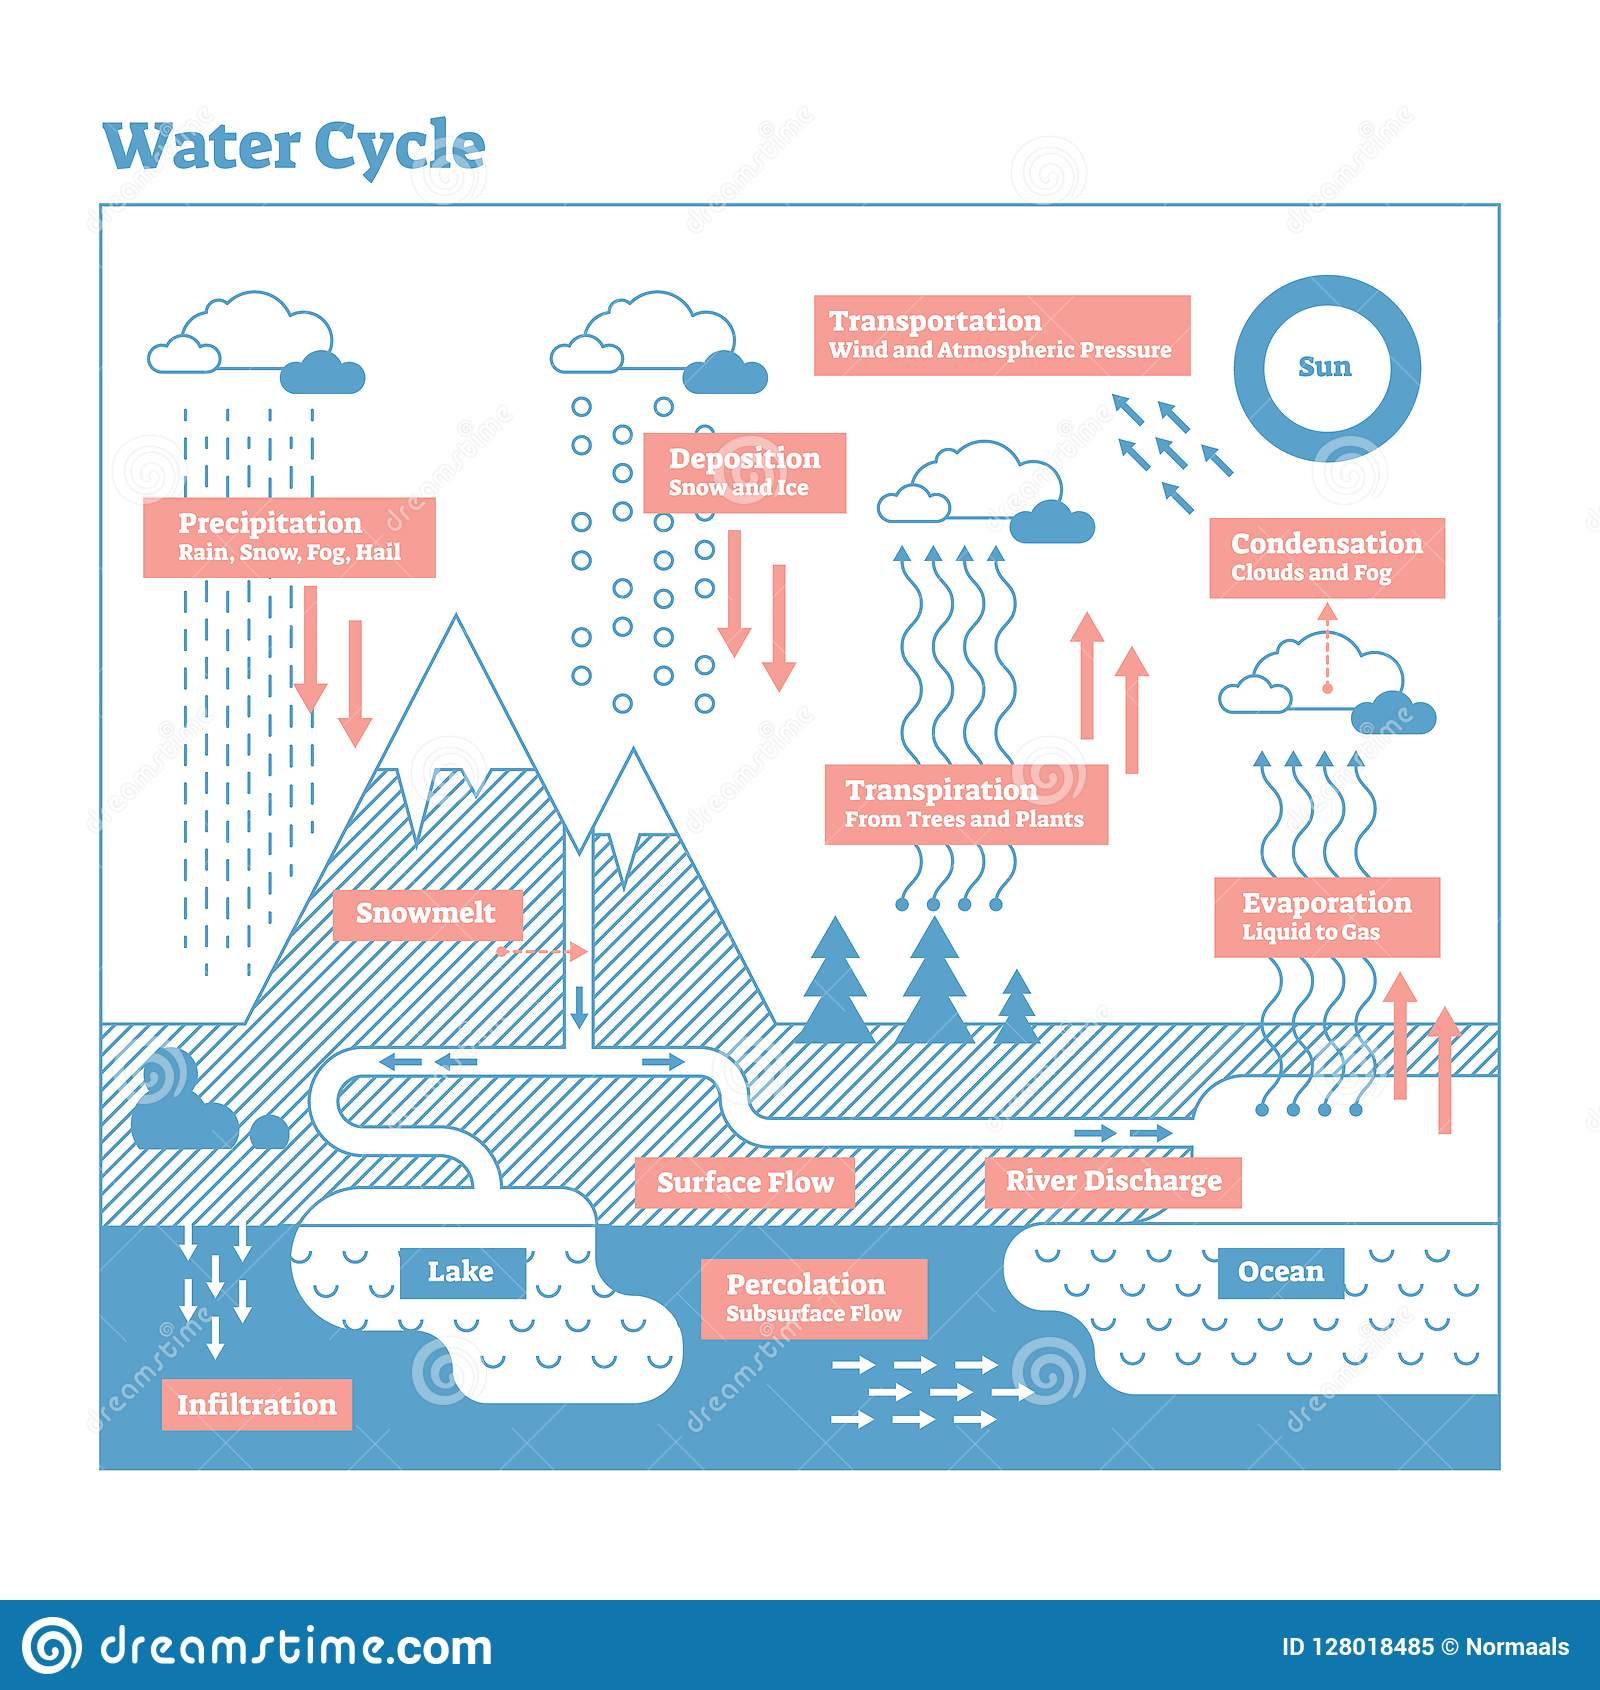 hight resolution of water cycle vector illustration diagram geo science ecosystemwater cycle vector illustration diagram geo science ecosystem scheme